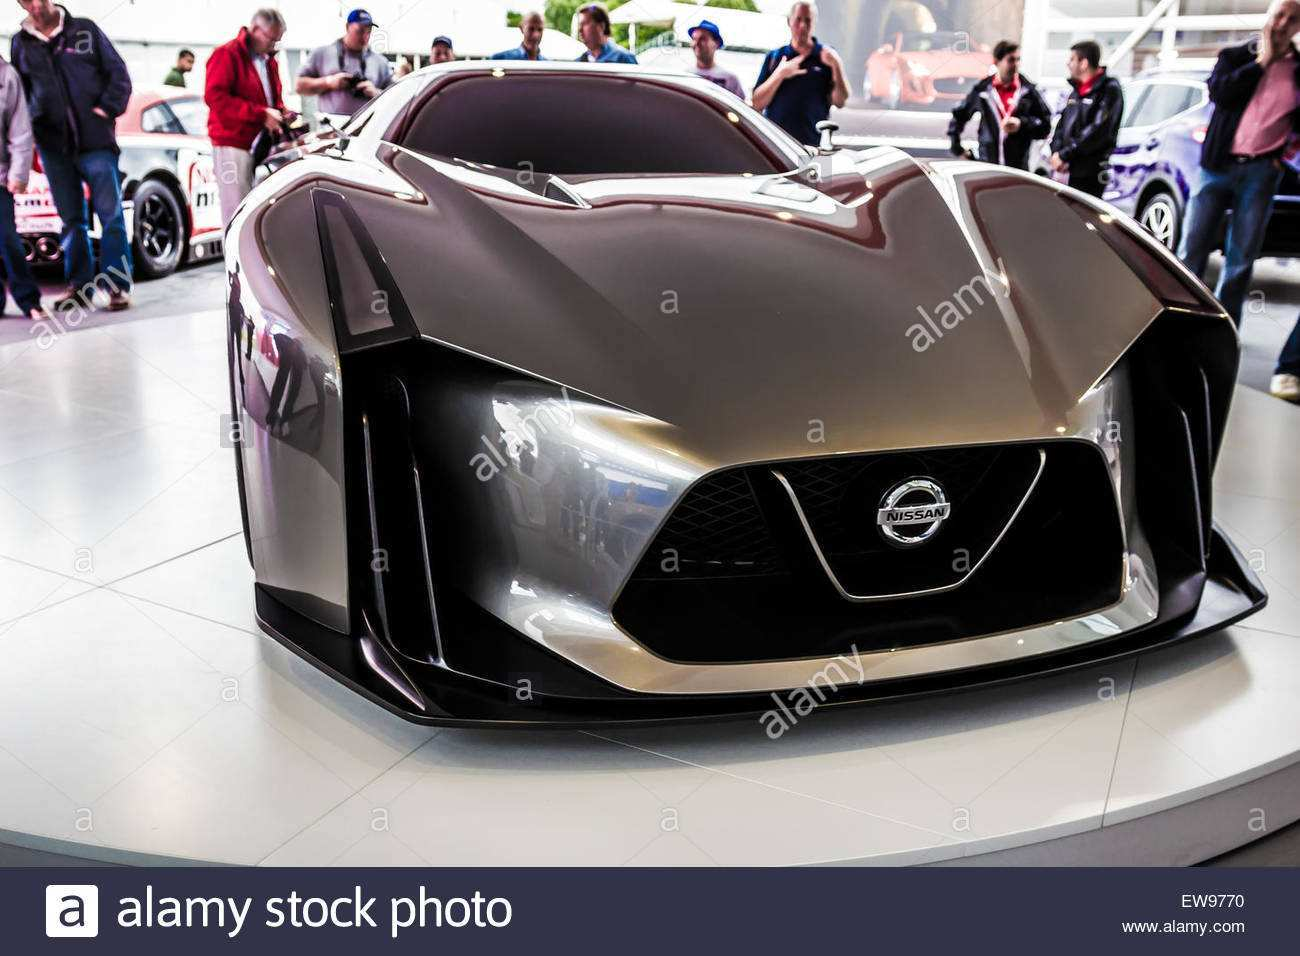 43 Gallery of Nissan Turismo 2020 Specs and Review by Nissan Turismo 2020